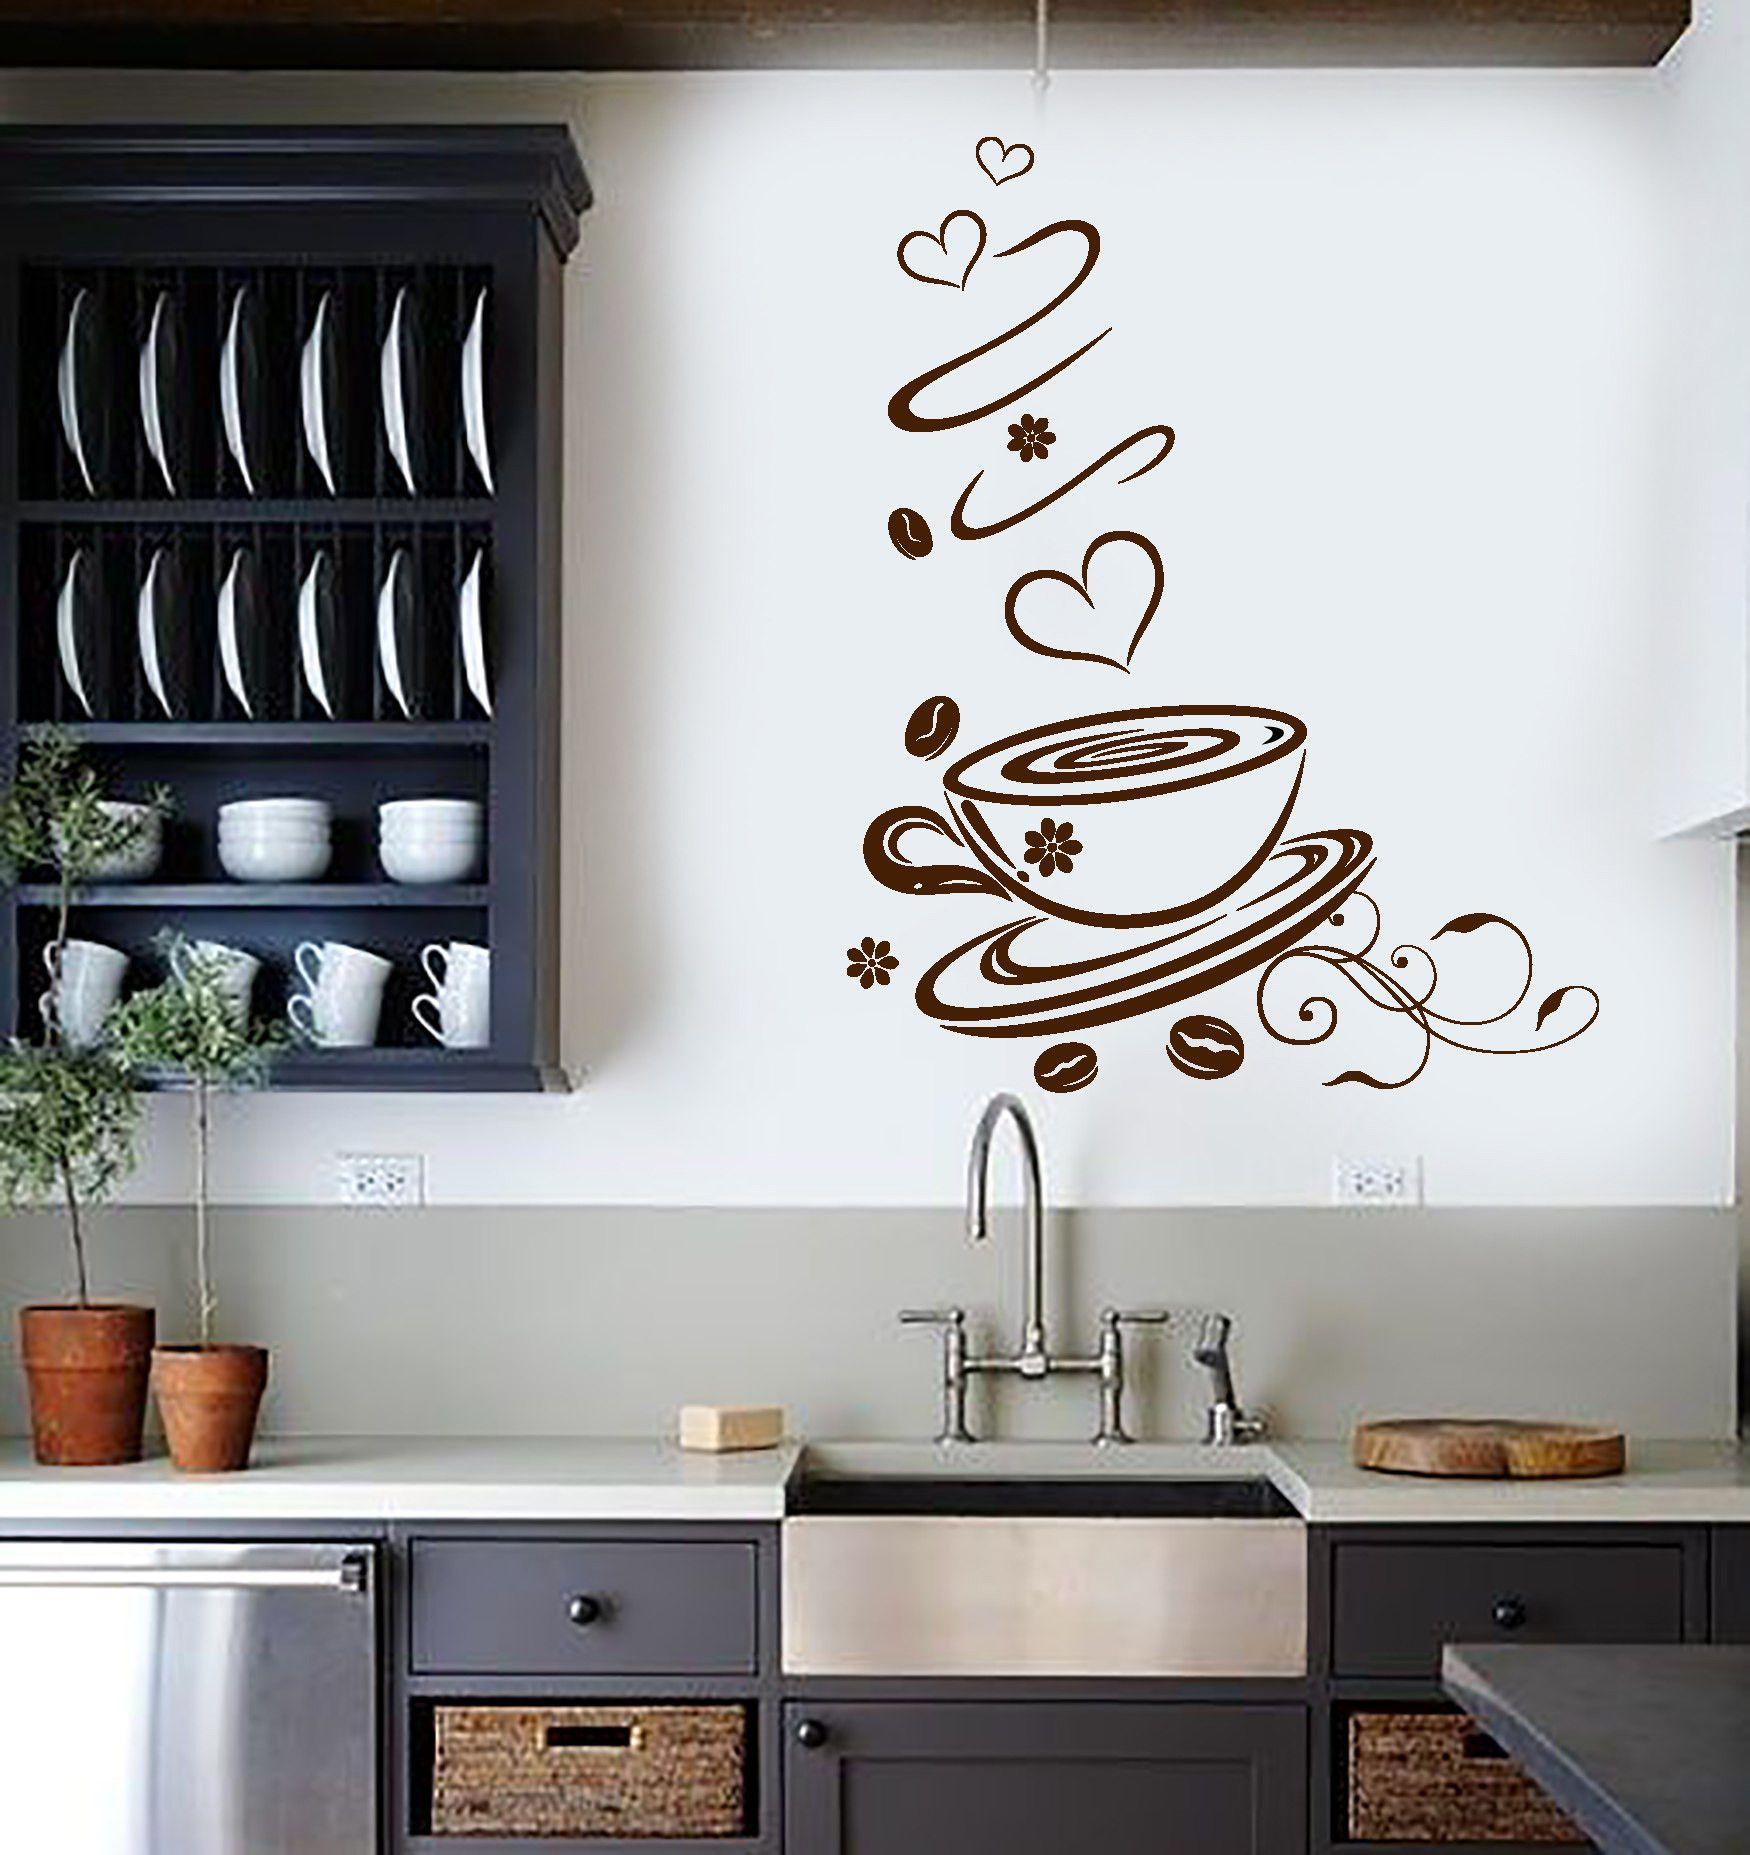 Wall Vinyl Decal Coffee Shop Cup Kitchen Art Decoration Stickers